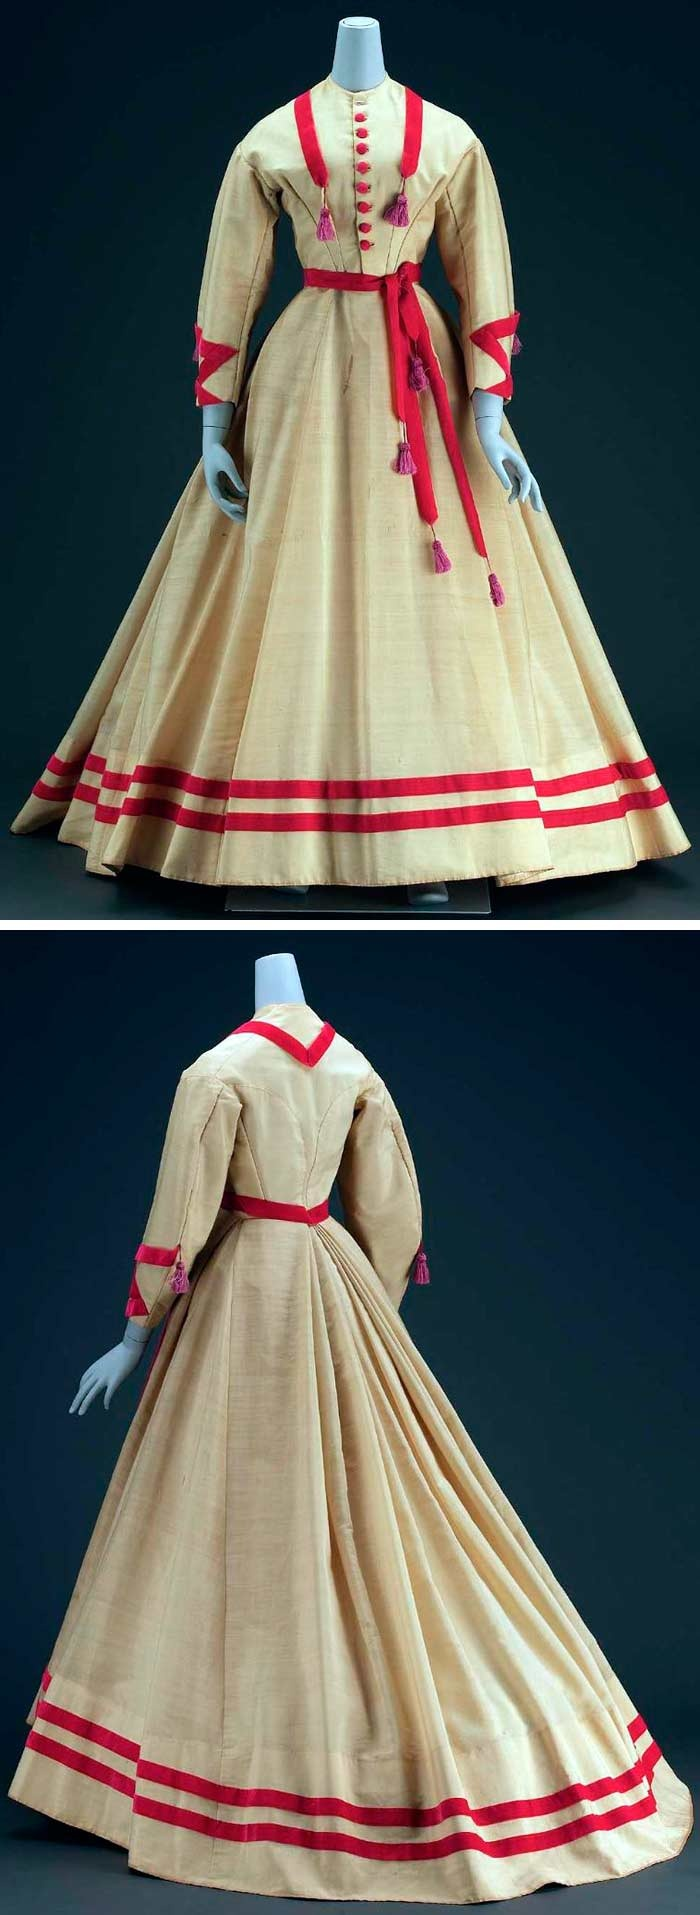 Dress, American, circa 1868. Alpaca, velvet ribbon, and covered buttons, silk tassels, cotton linen inner bodice, glazed cotton lining, and metal closure. Skirt fastened at left front with most of fullness in inverted box pleats in back, longer in back for train. Trimmed around neck, sleeves, waist, and bottom of skirt with bands of pinkish-red velvet ribbon. Purple silk tassels on sleeves, front, and waistband. Via Museum of Fine Arts, Boston.